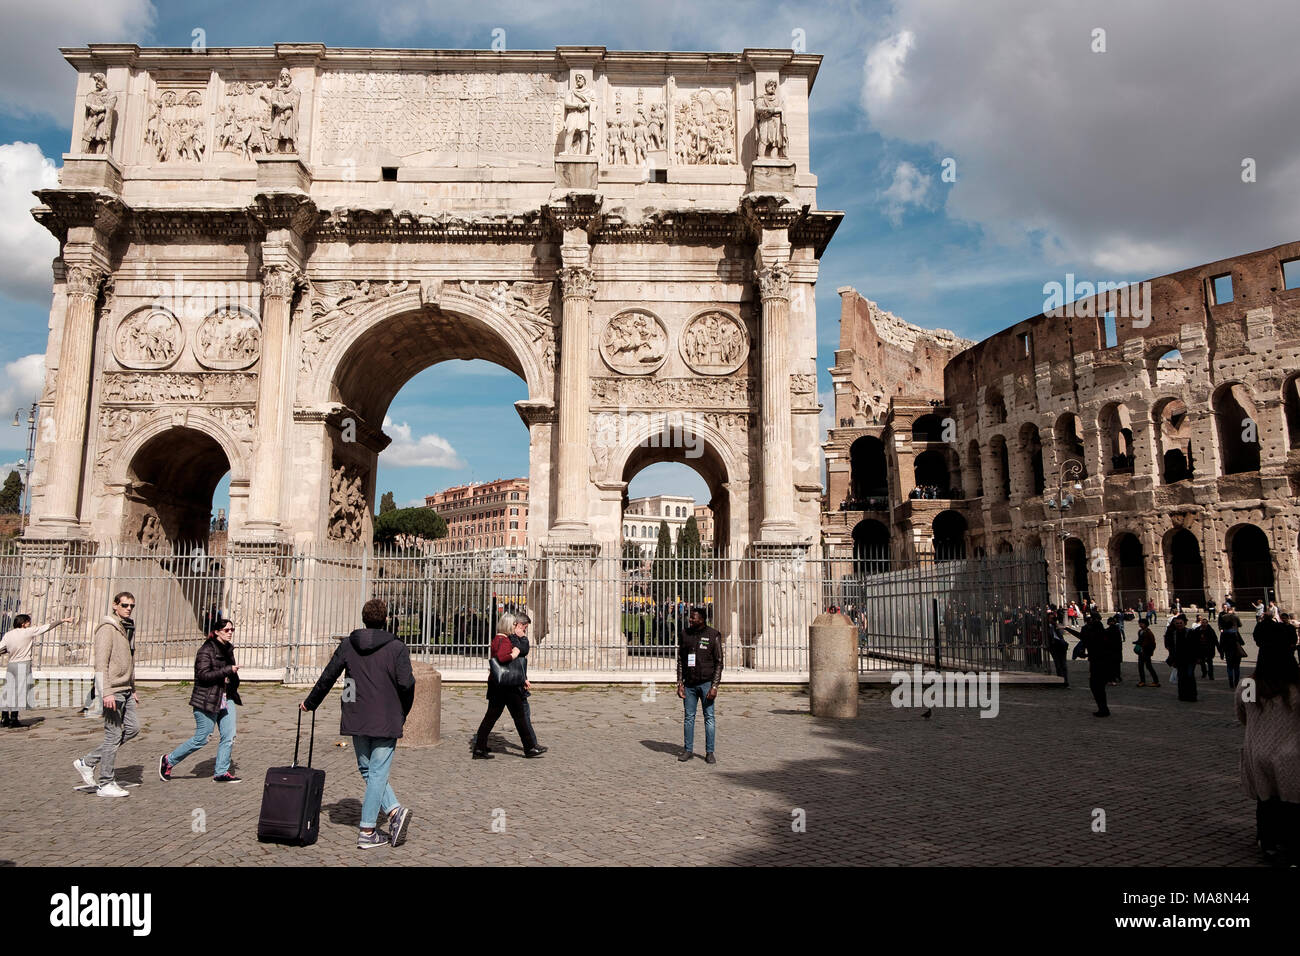 A tourist with a suitcase admires the Arch of Constantine, Arco di Costantino, Rome - Stock Image